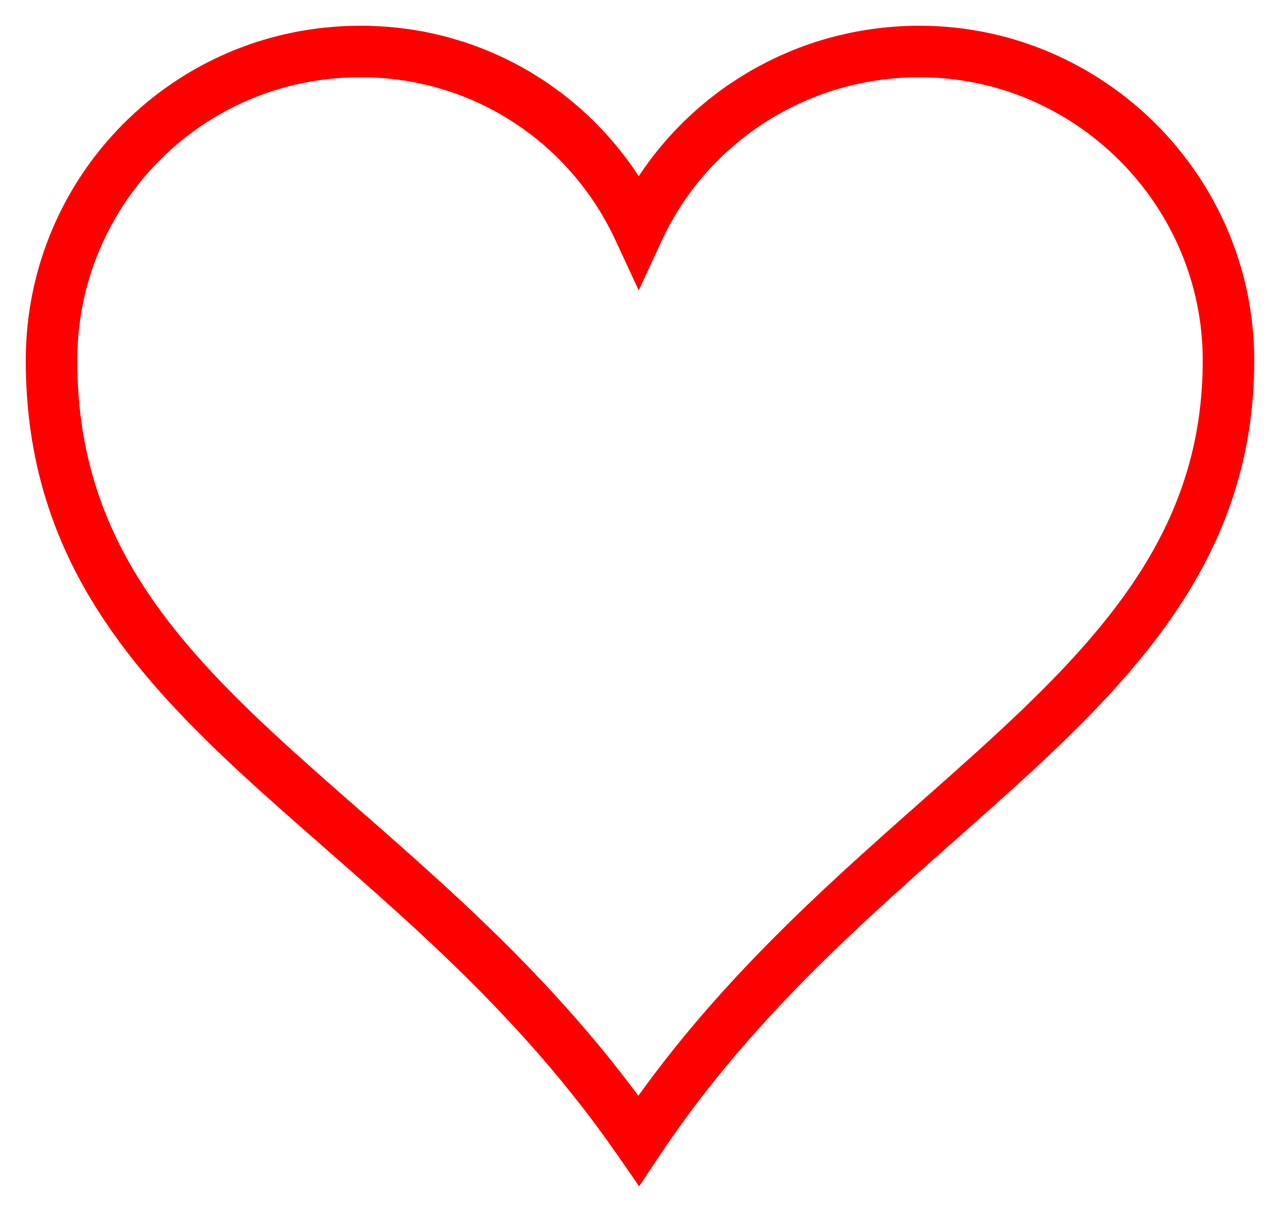 Corazón png red heart. Simple transparent stickpng download